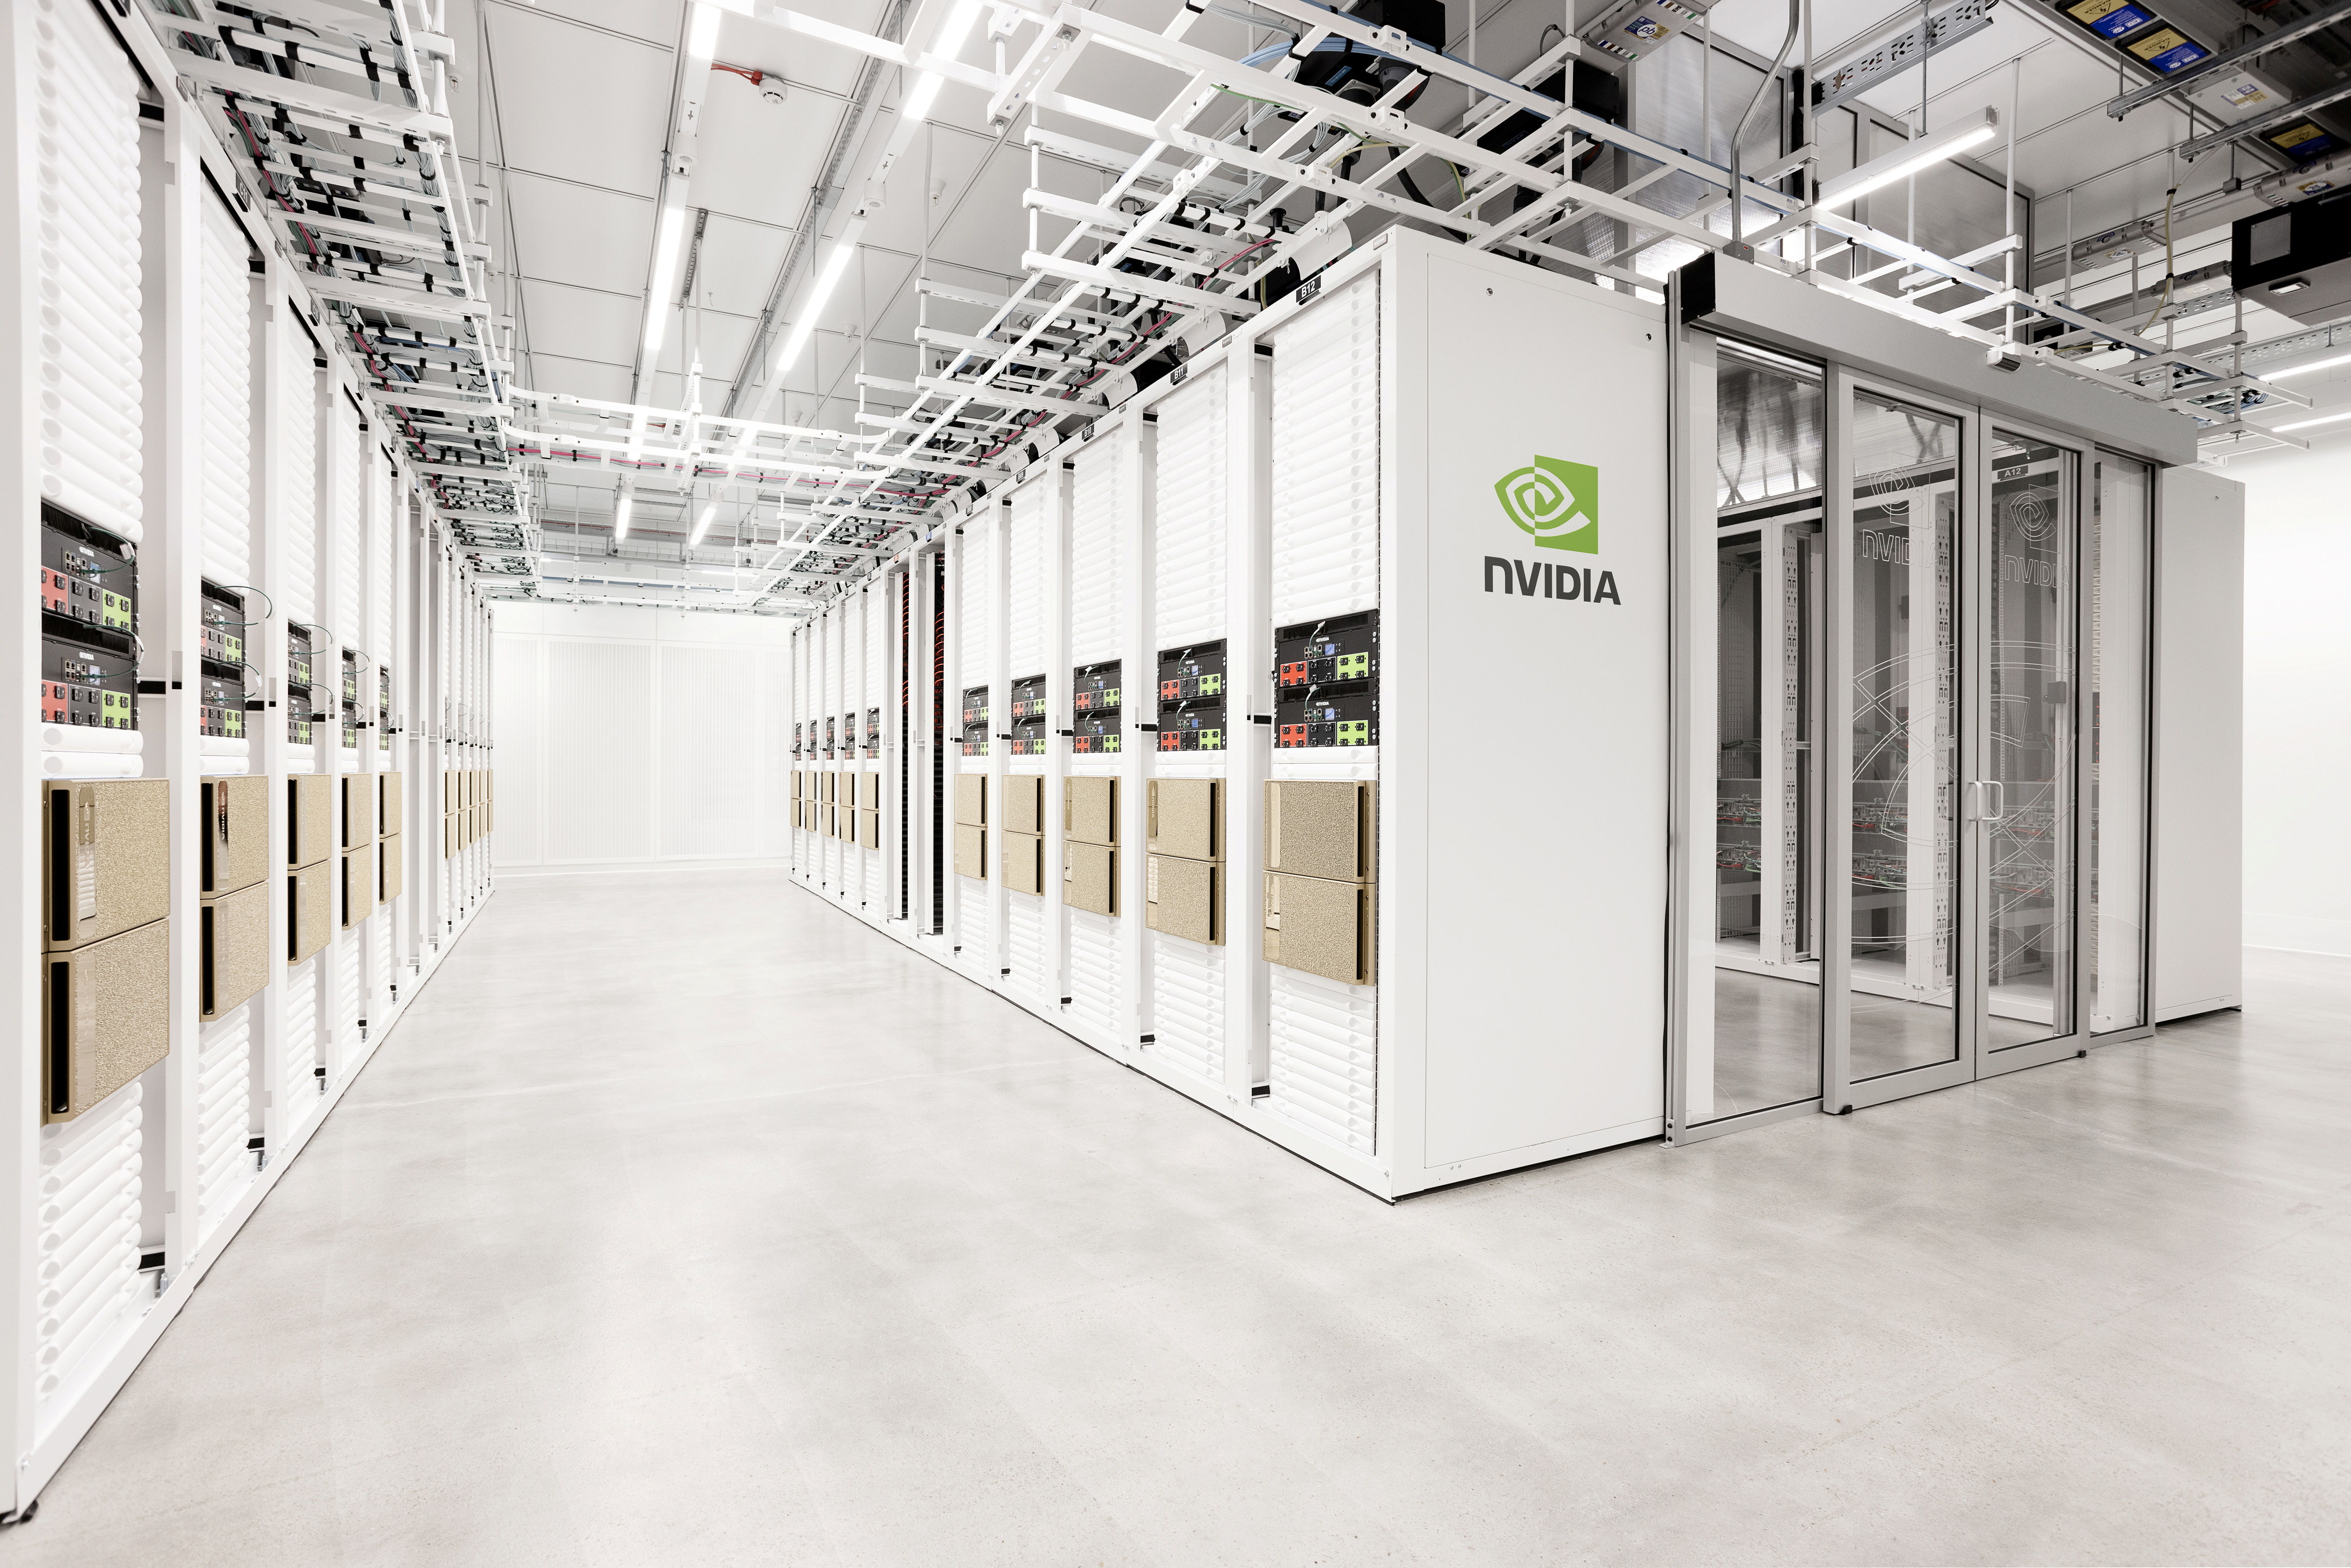 The Cambridge-1 supercomputer, which owner Nvidia Corp says is the United Kingdom's fastest supercomputer, is seen in Cambridge, Britain, in this undated handout photo obtained by Reuters. Courtesy of Nvidia Corp/Handout via REUTERS